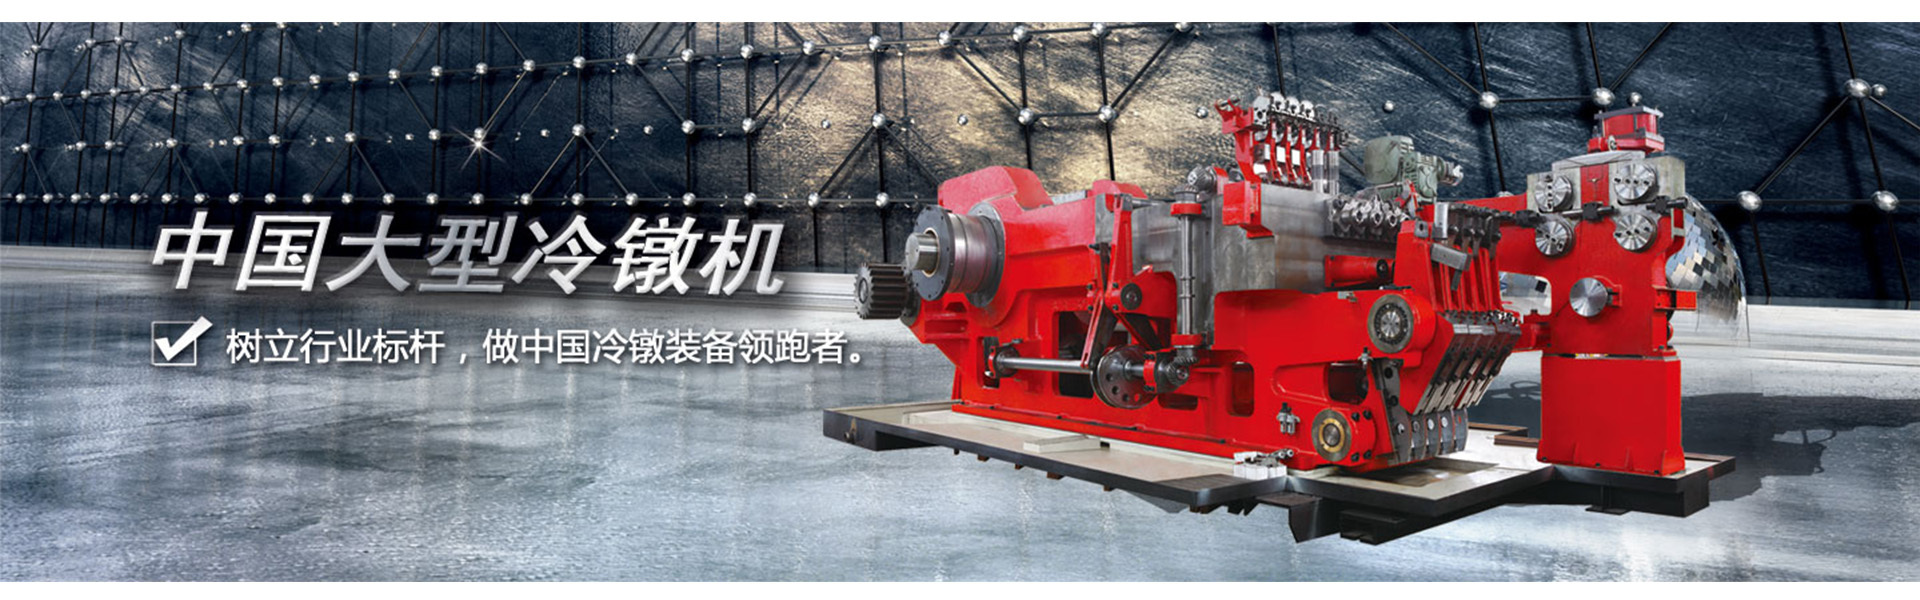 Cold heading machine in the use of easy to damage, then how